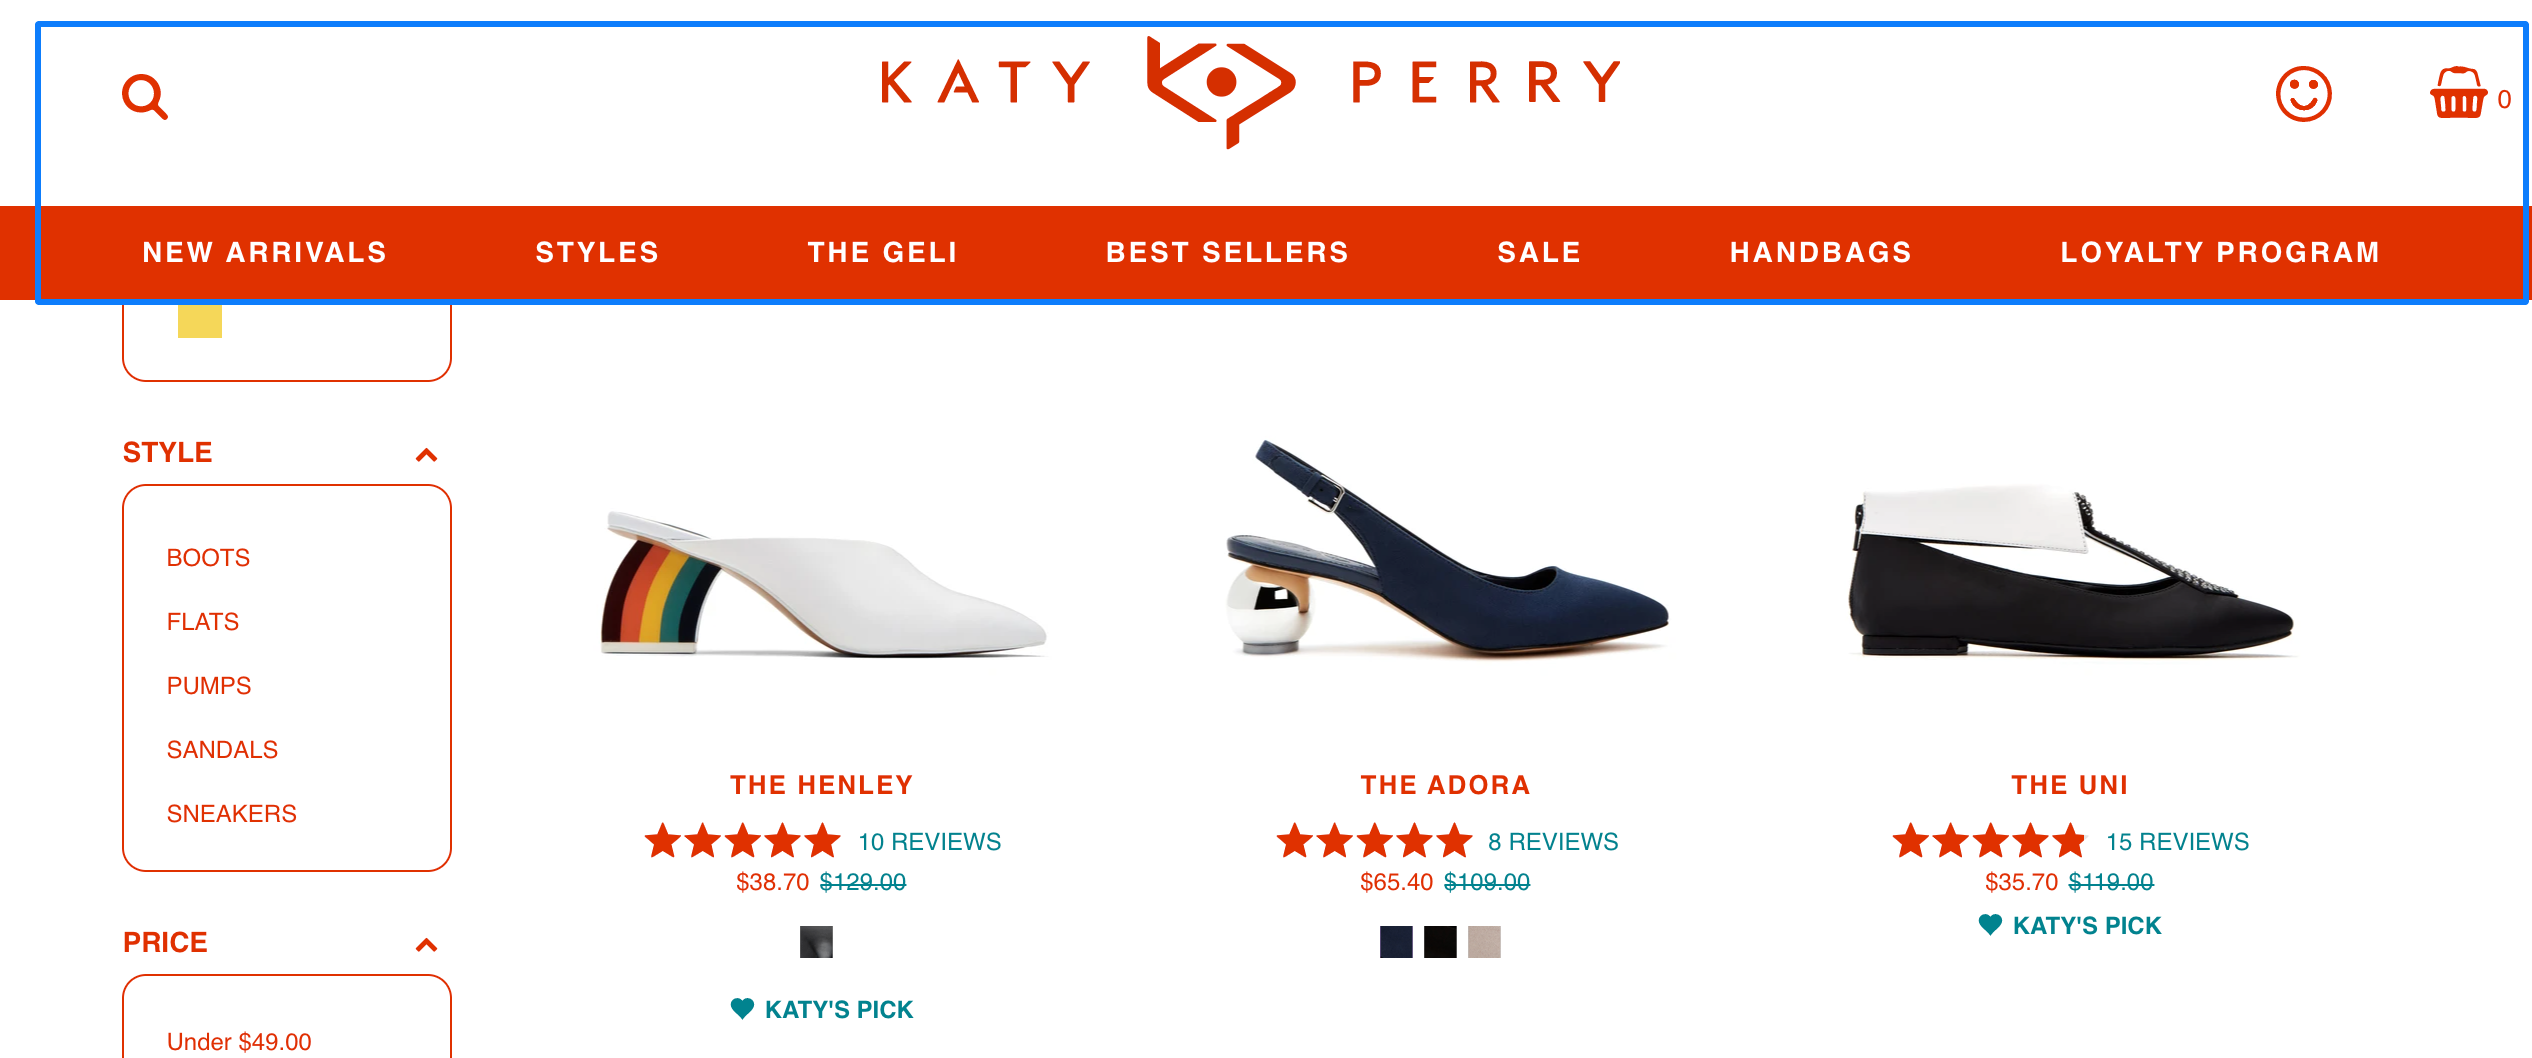 contrasting colors make site search navigation stand out